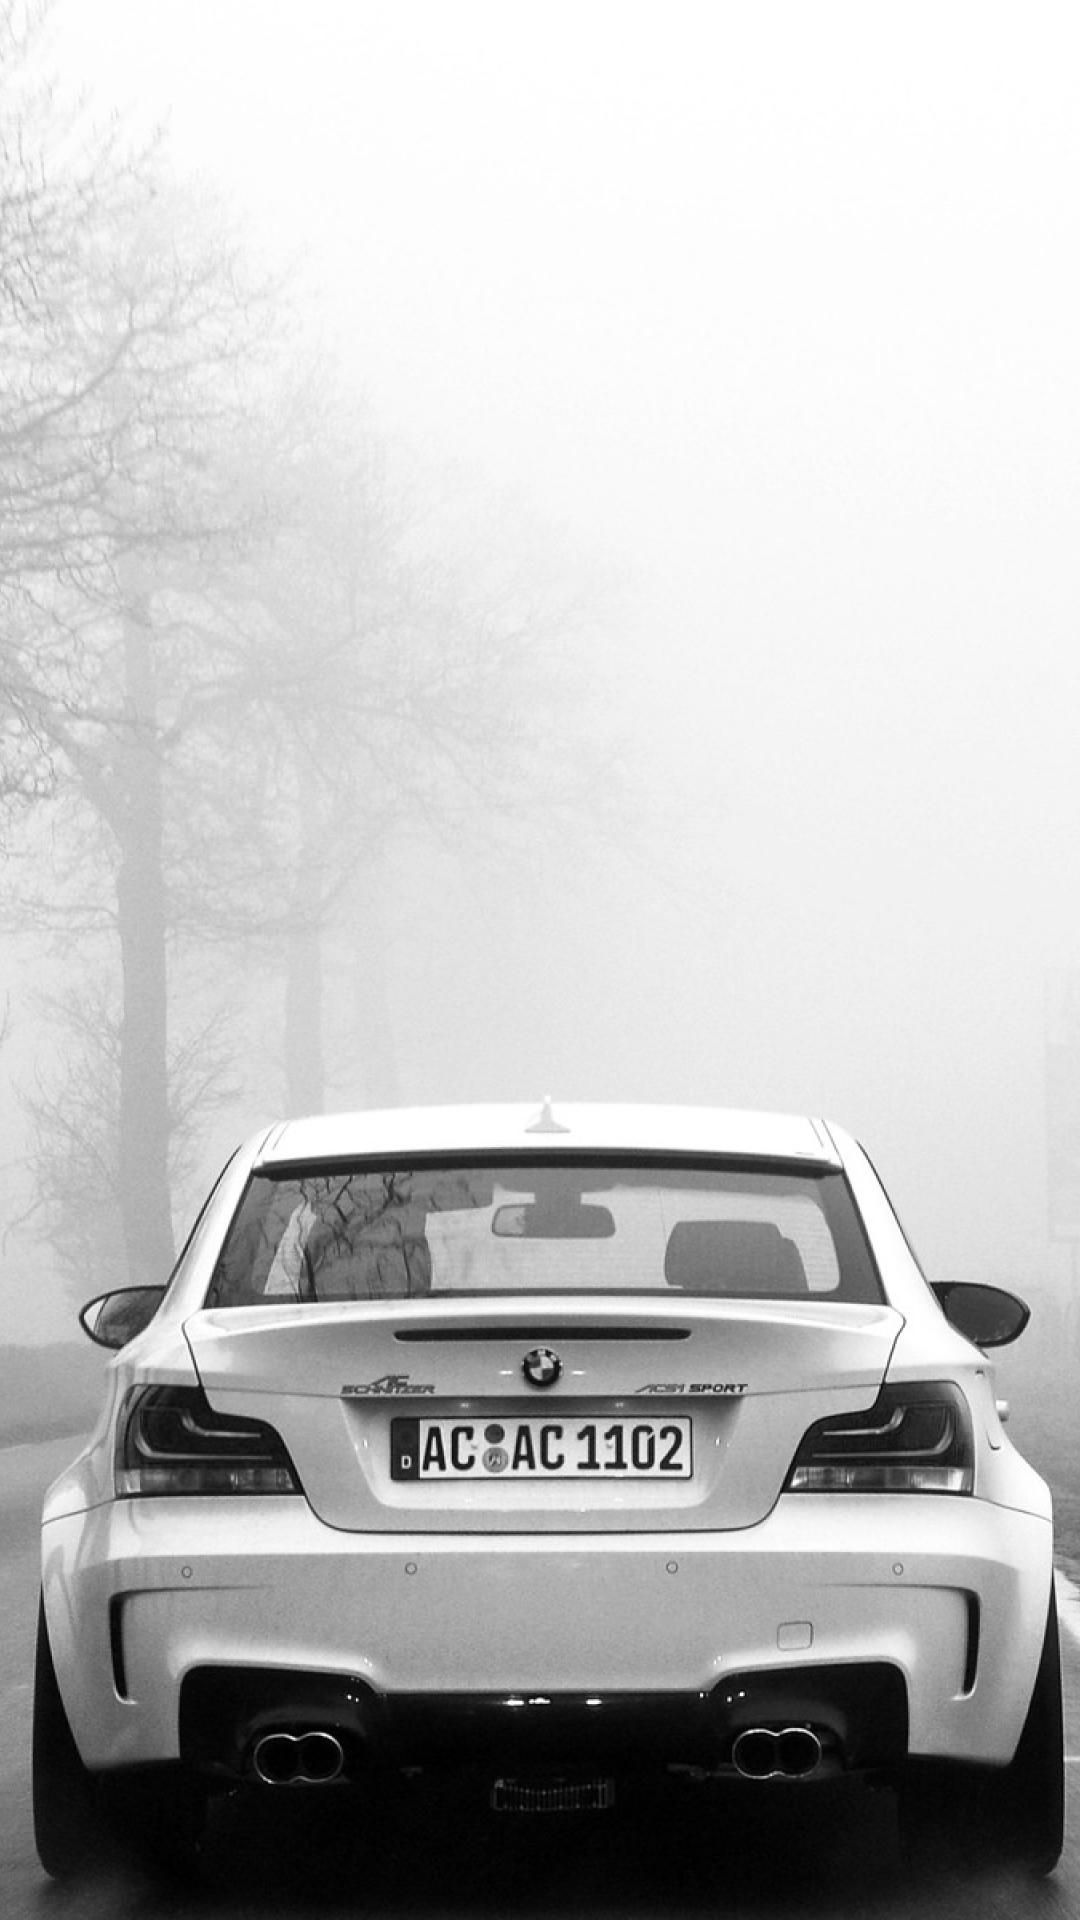 Iphone 6 wallpaper tumblr cars - Bmw 135i Coupe Auto Moto Bmw Iphone 6 Plus Wallpaper